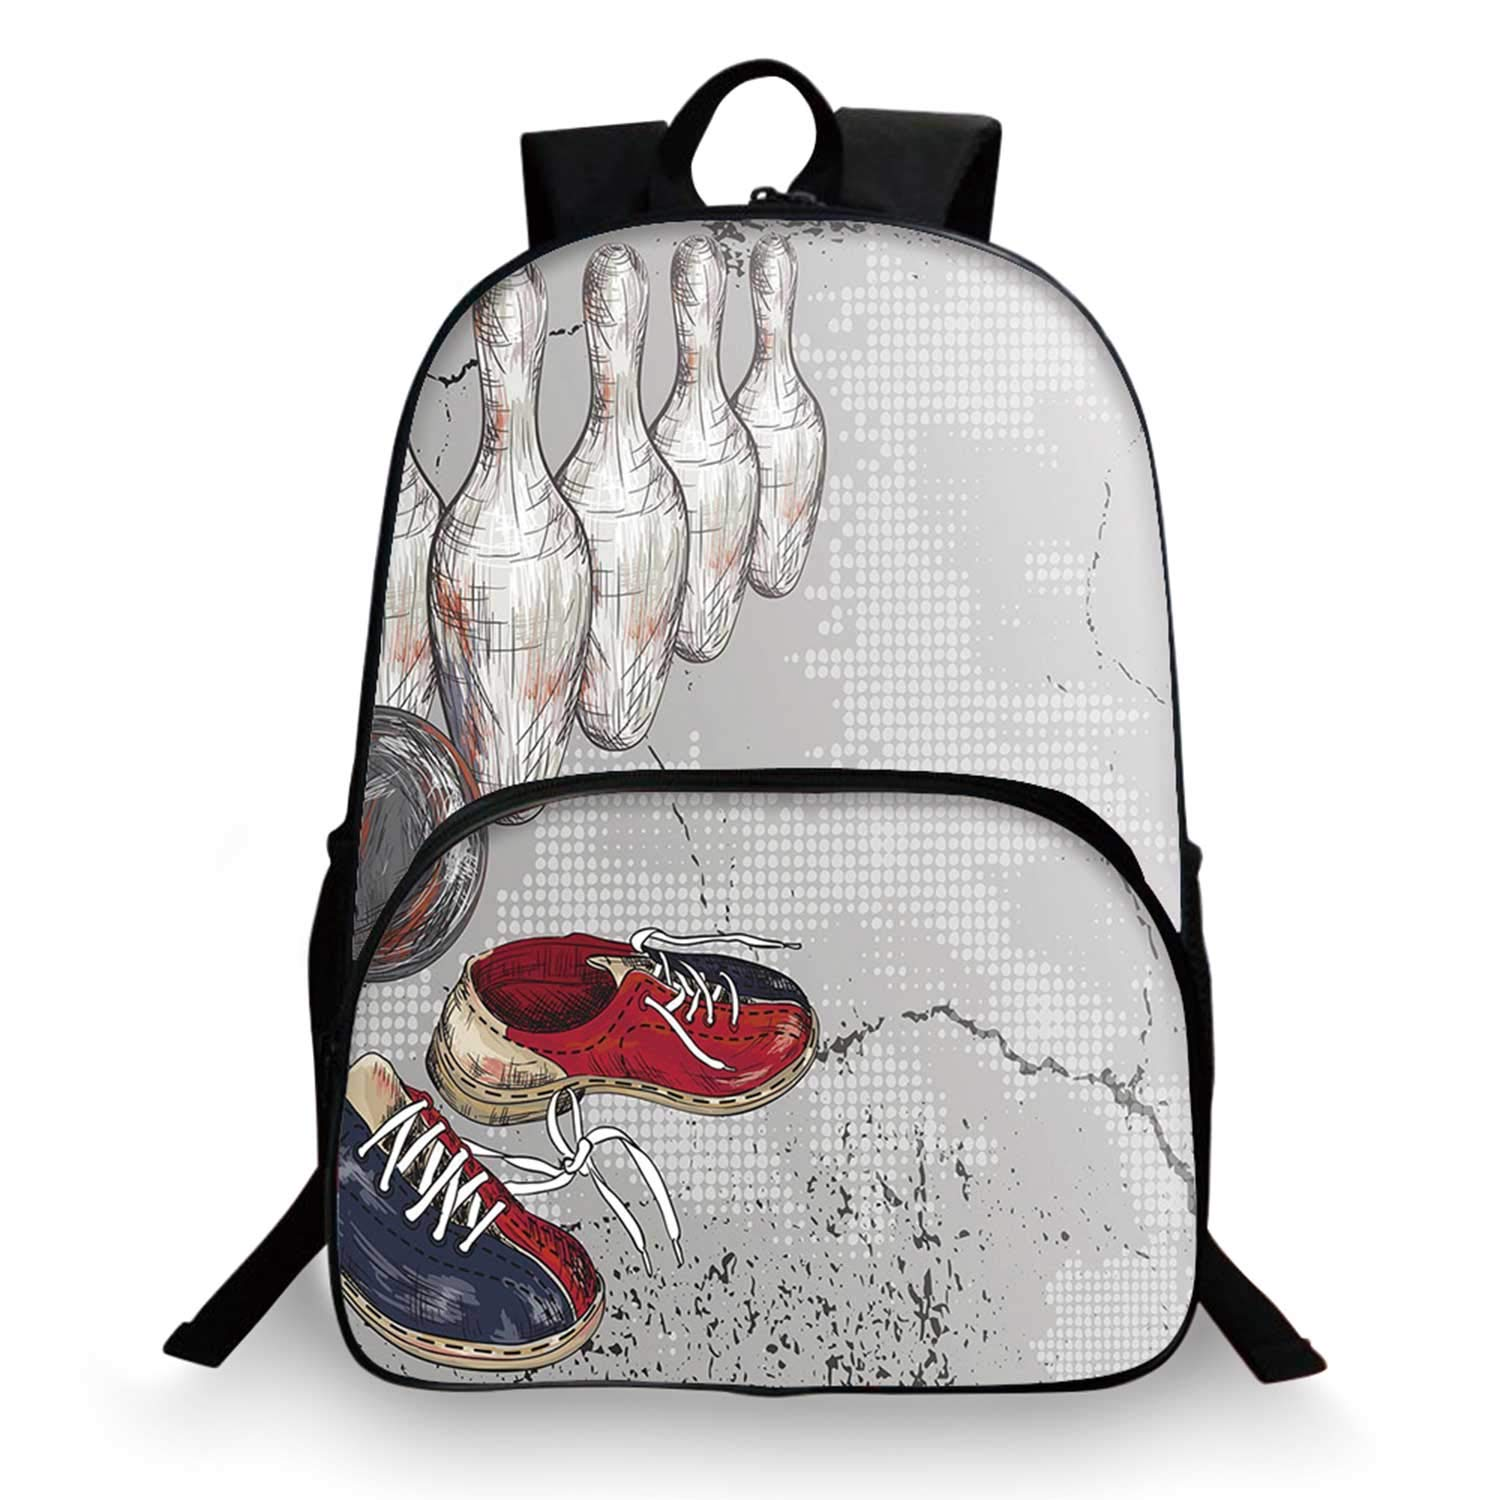 Bowling Party Decorations Various Schoolbag,Bowling Shoes Pins and Ball Artistic Grunge Style Decorative for student,11''Lx6''Wx15''H by C COABALLA